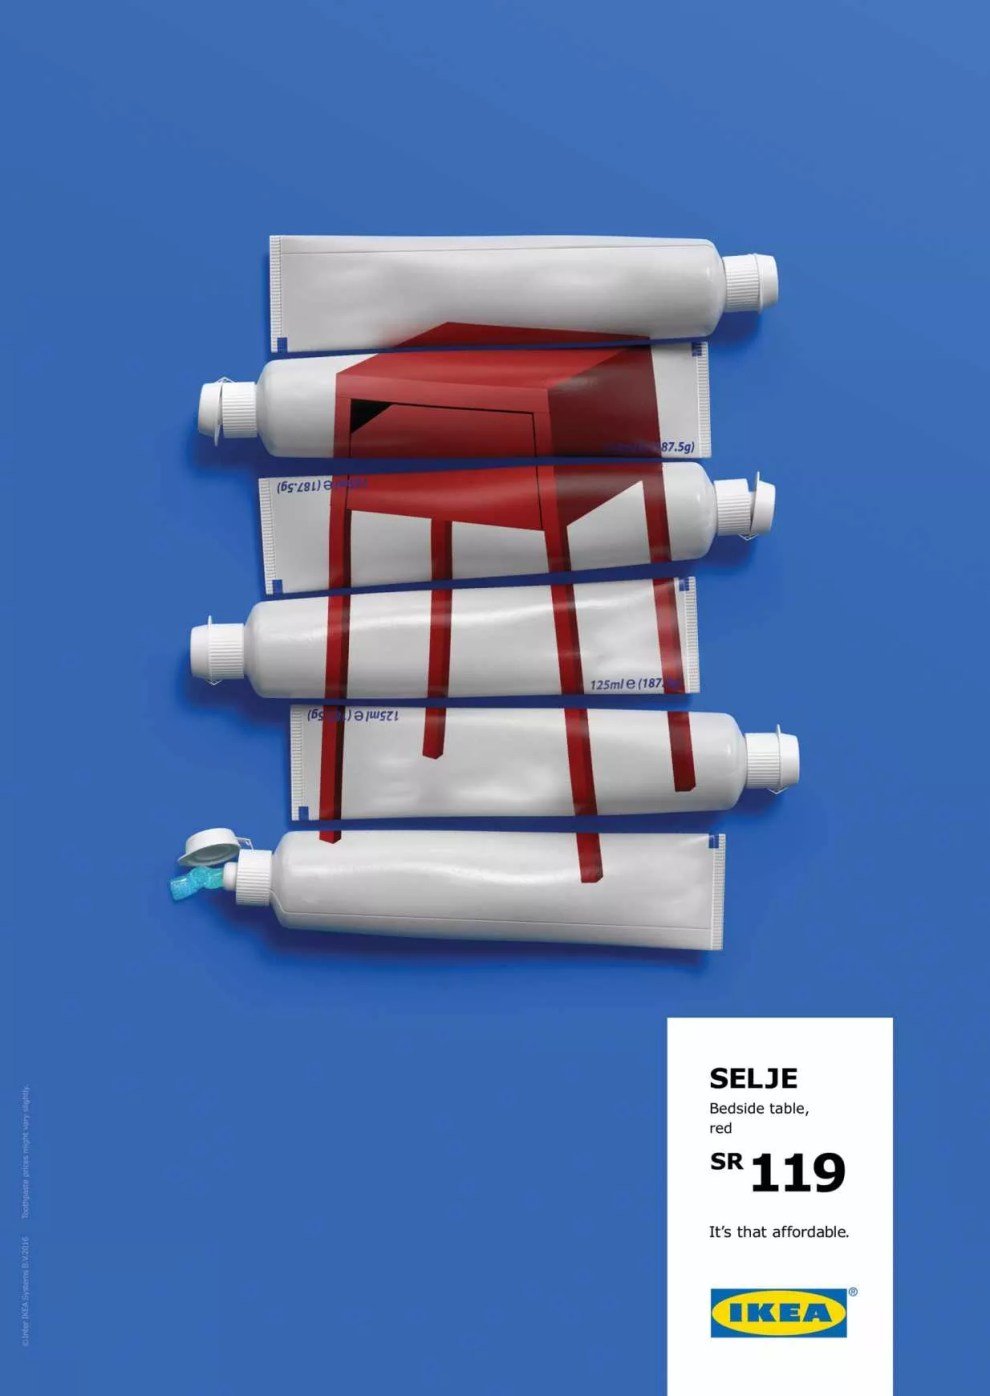 ikea-ads-clever-affordability-4